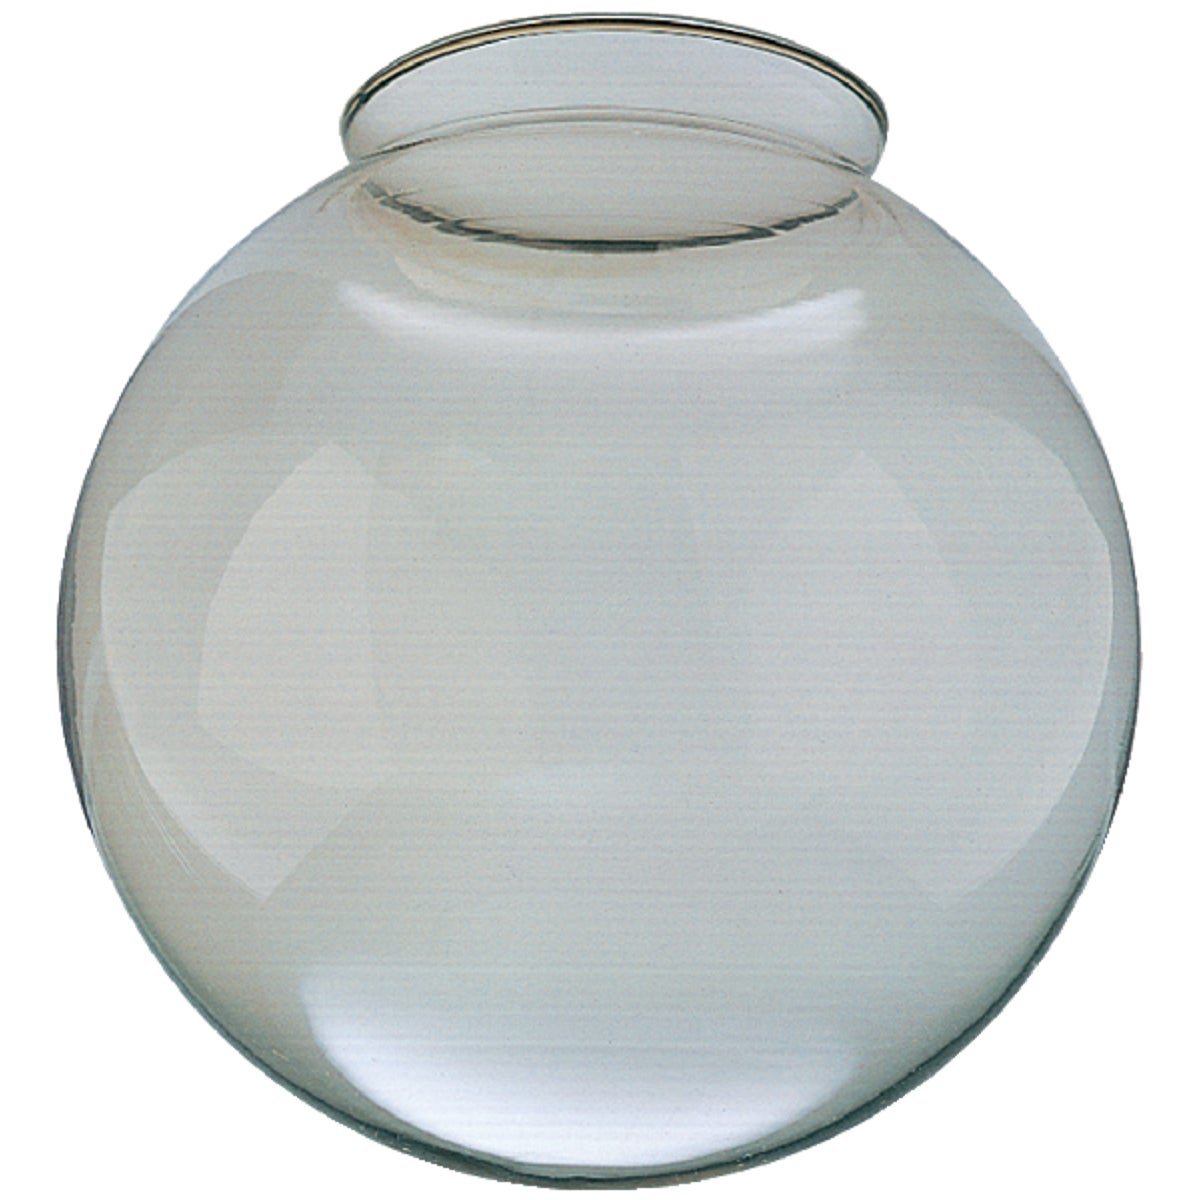 "6"" SMOKE FIXTURE GLOBE - 85705 by Westinghouse Lightng"